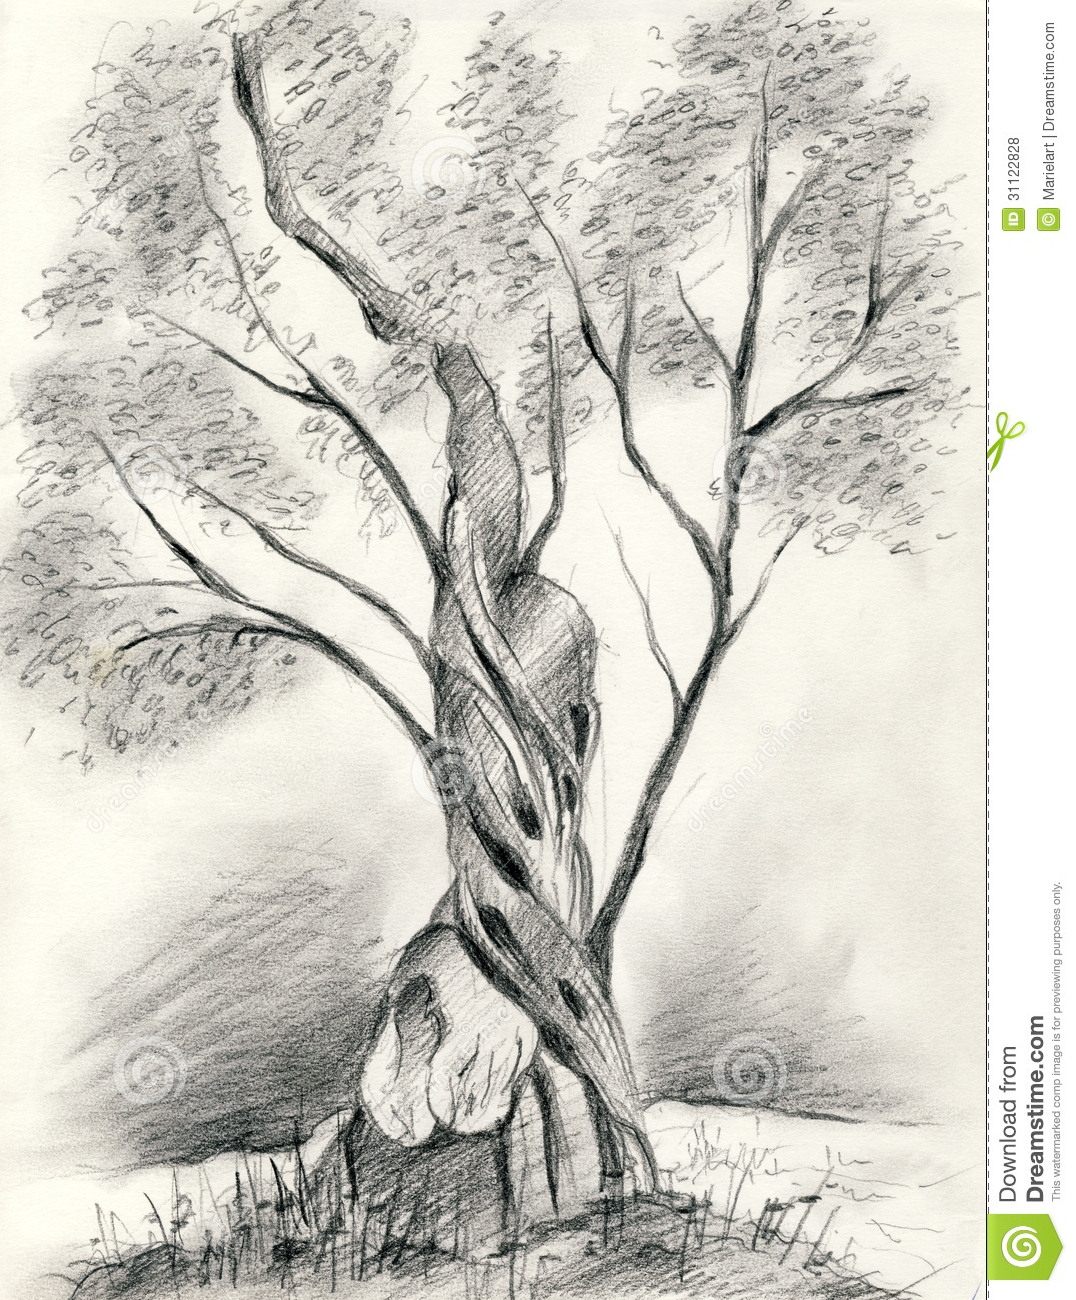 A pencil drawing of a single olive tree